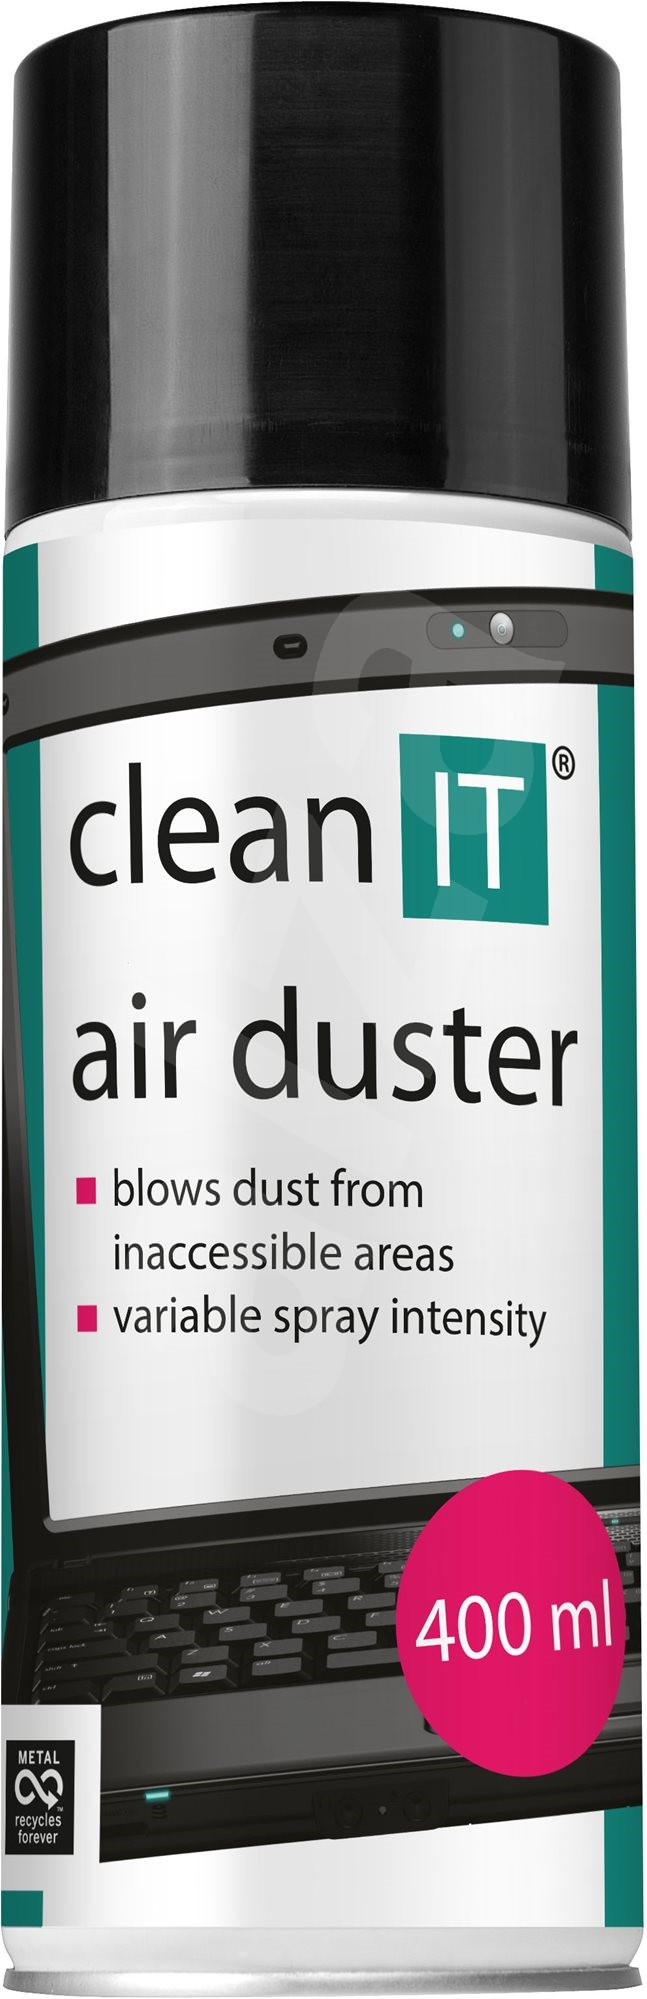 clean it air duster 400g cleaner. Black Bedroom Furniture Sets. Home Design Ideas